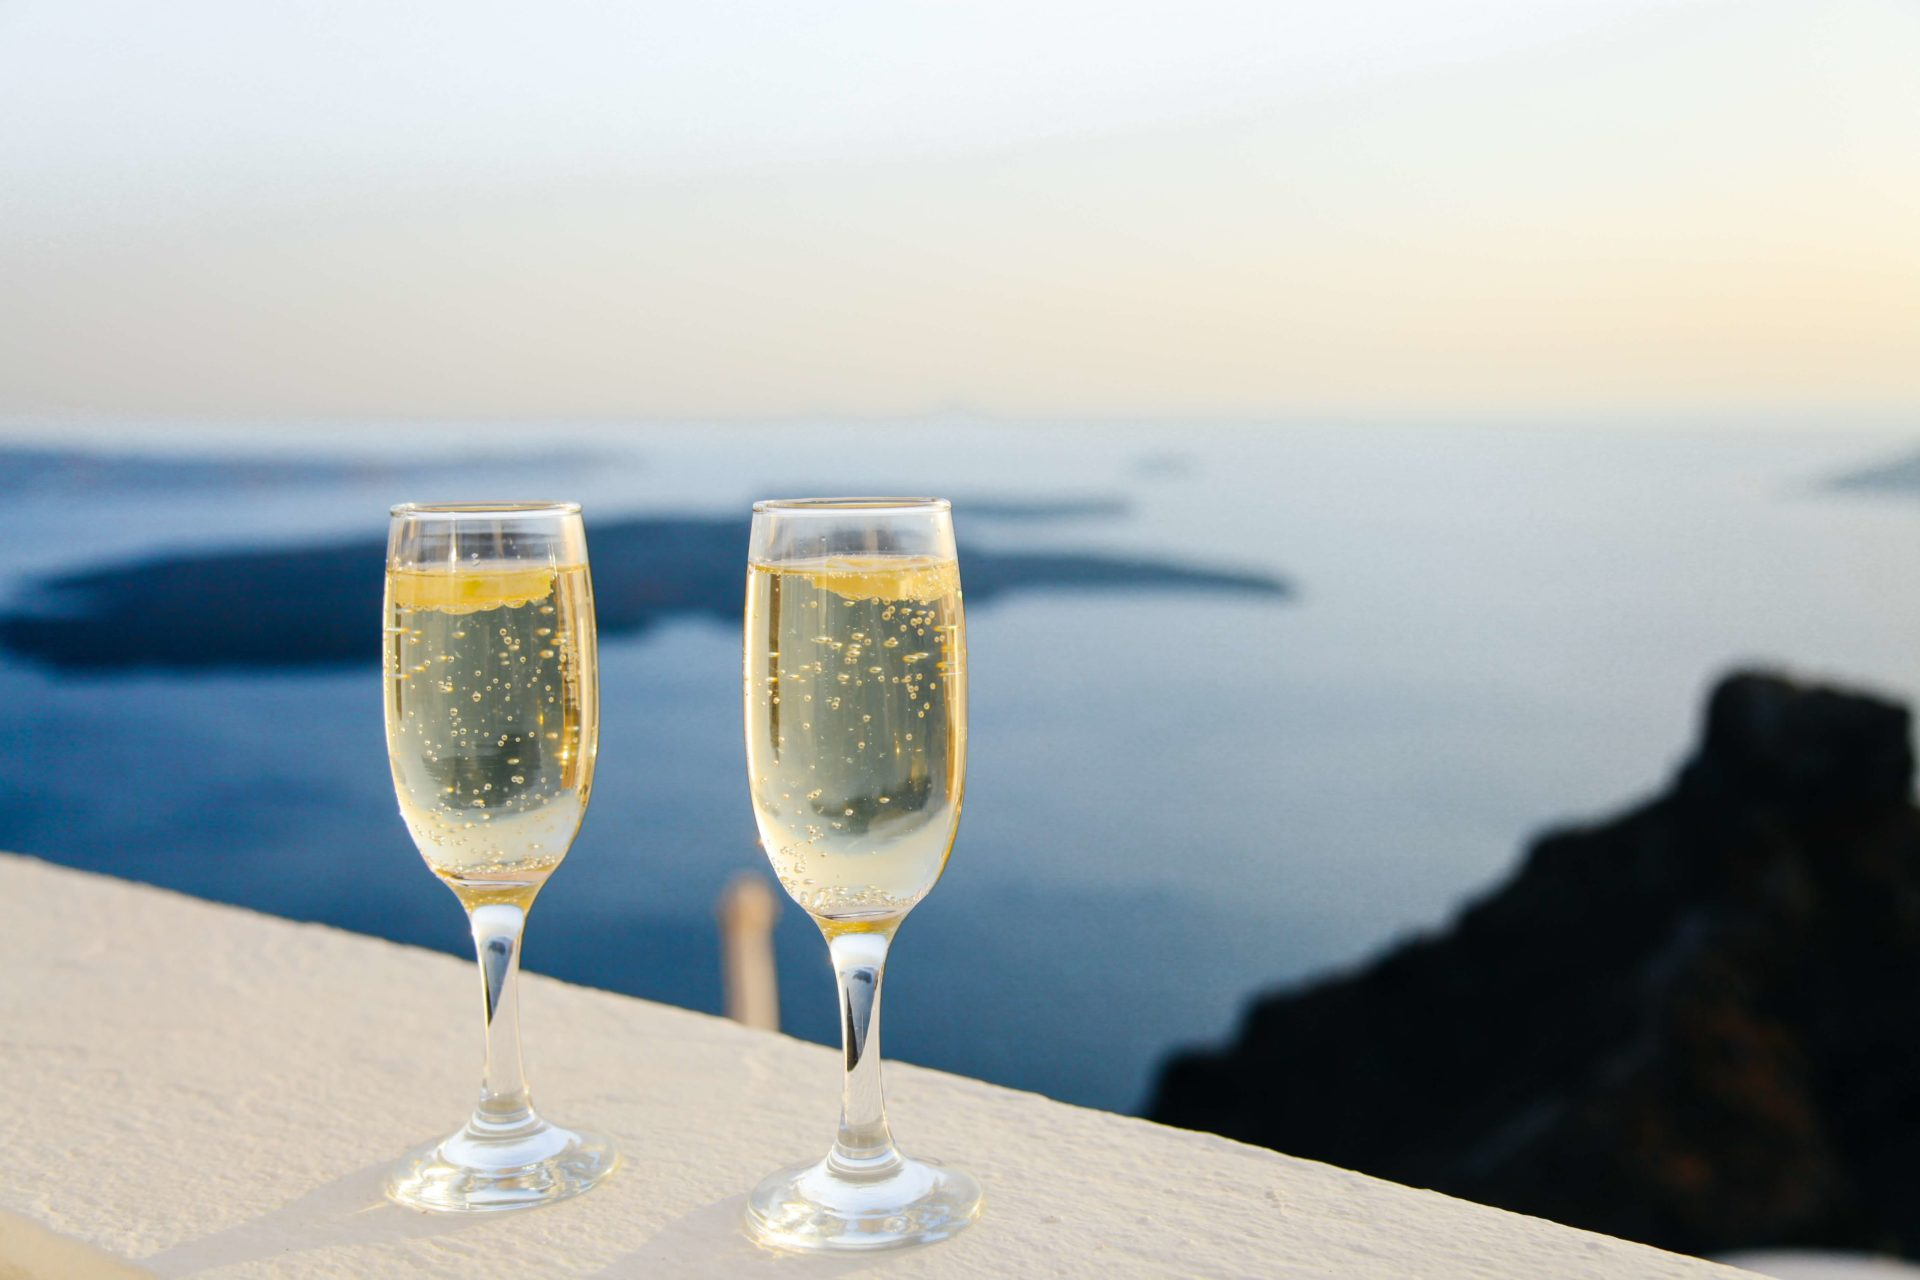 Two champagne flutes on a table overlooking the ocean